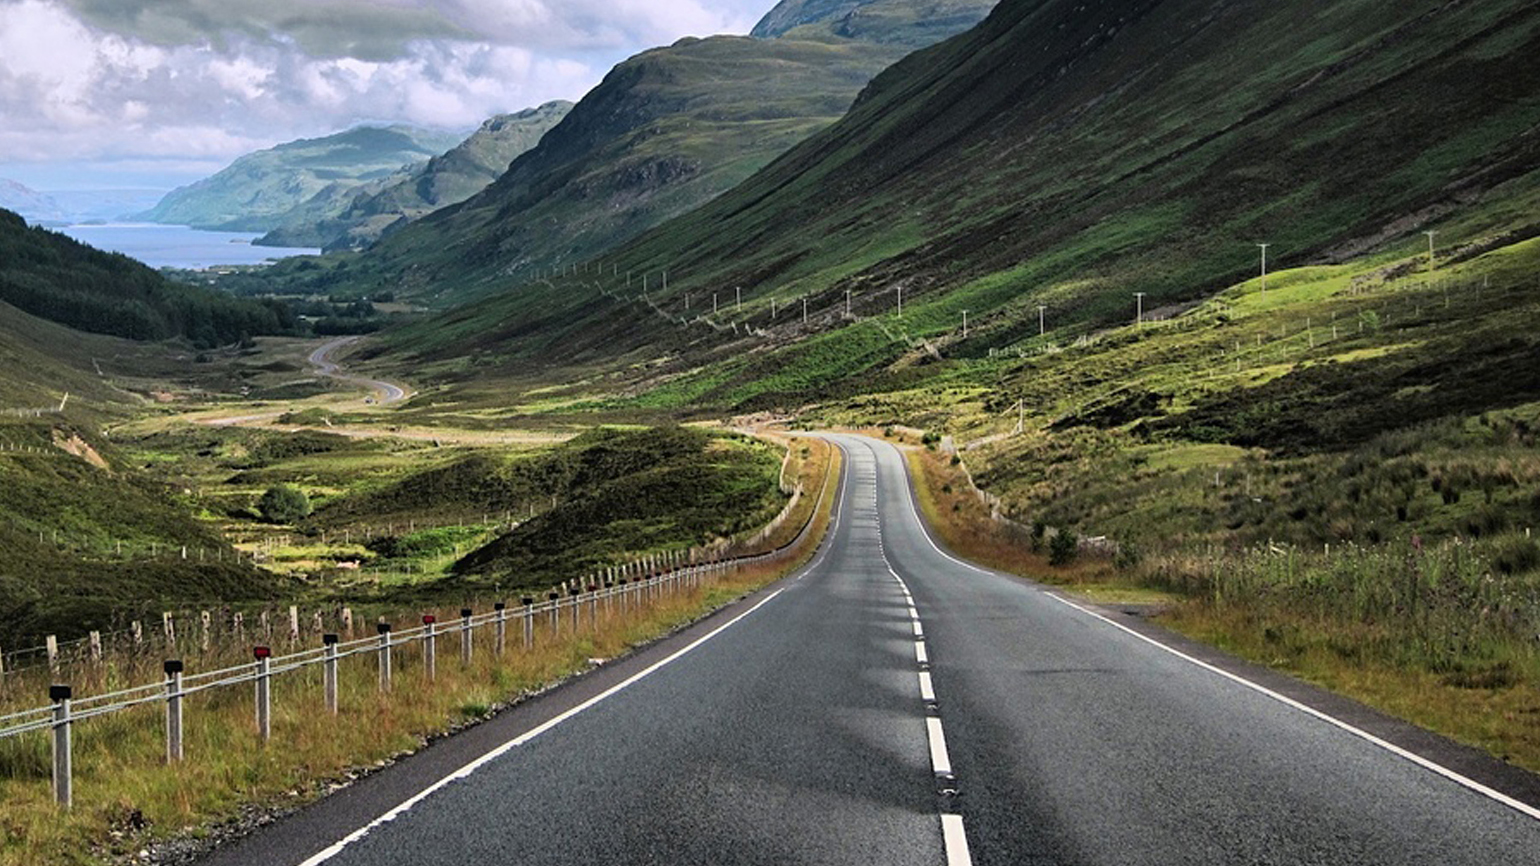 Scotland's landscape just gets more beautiful the further you ride north.